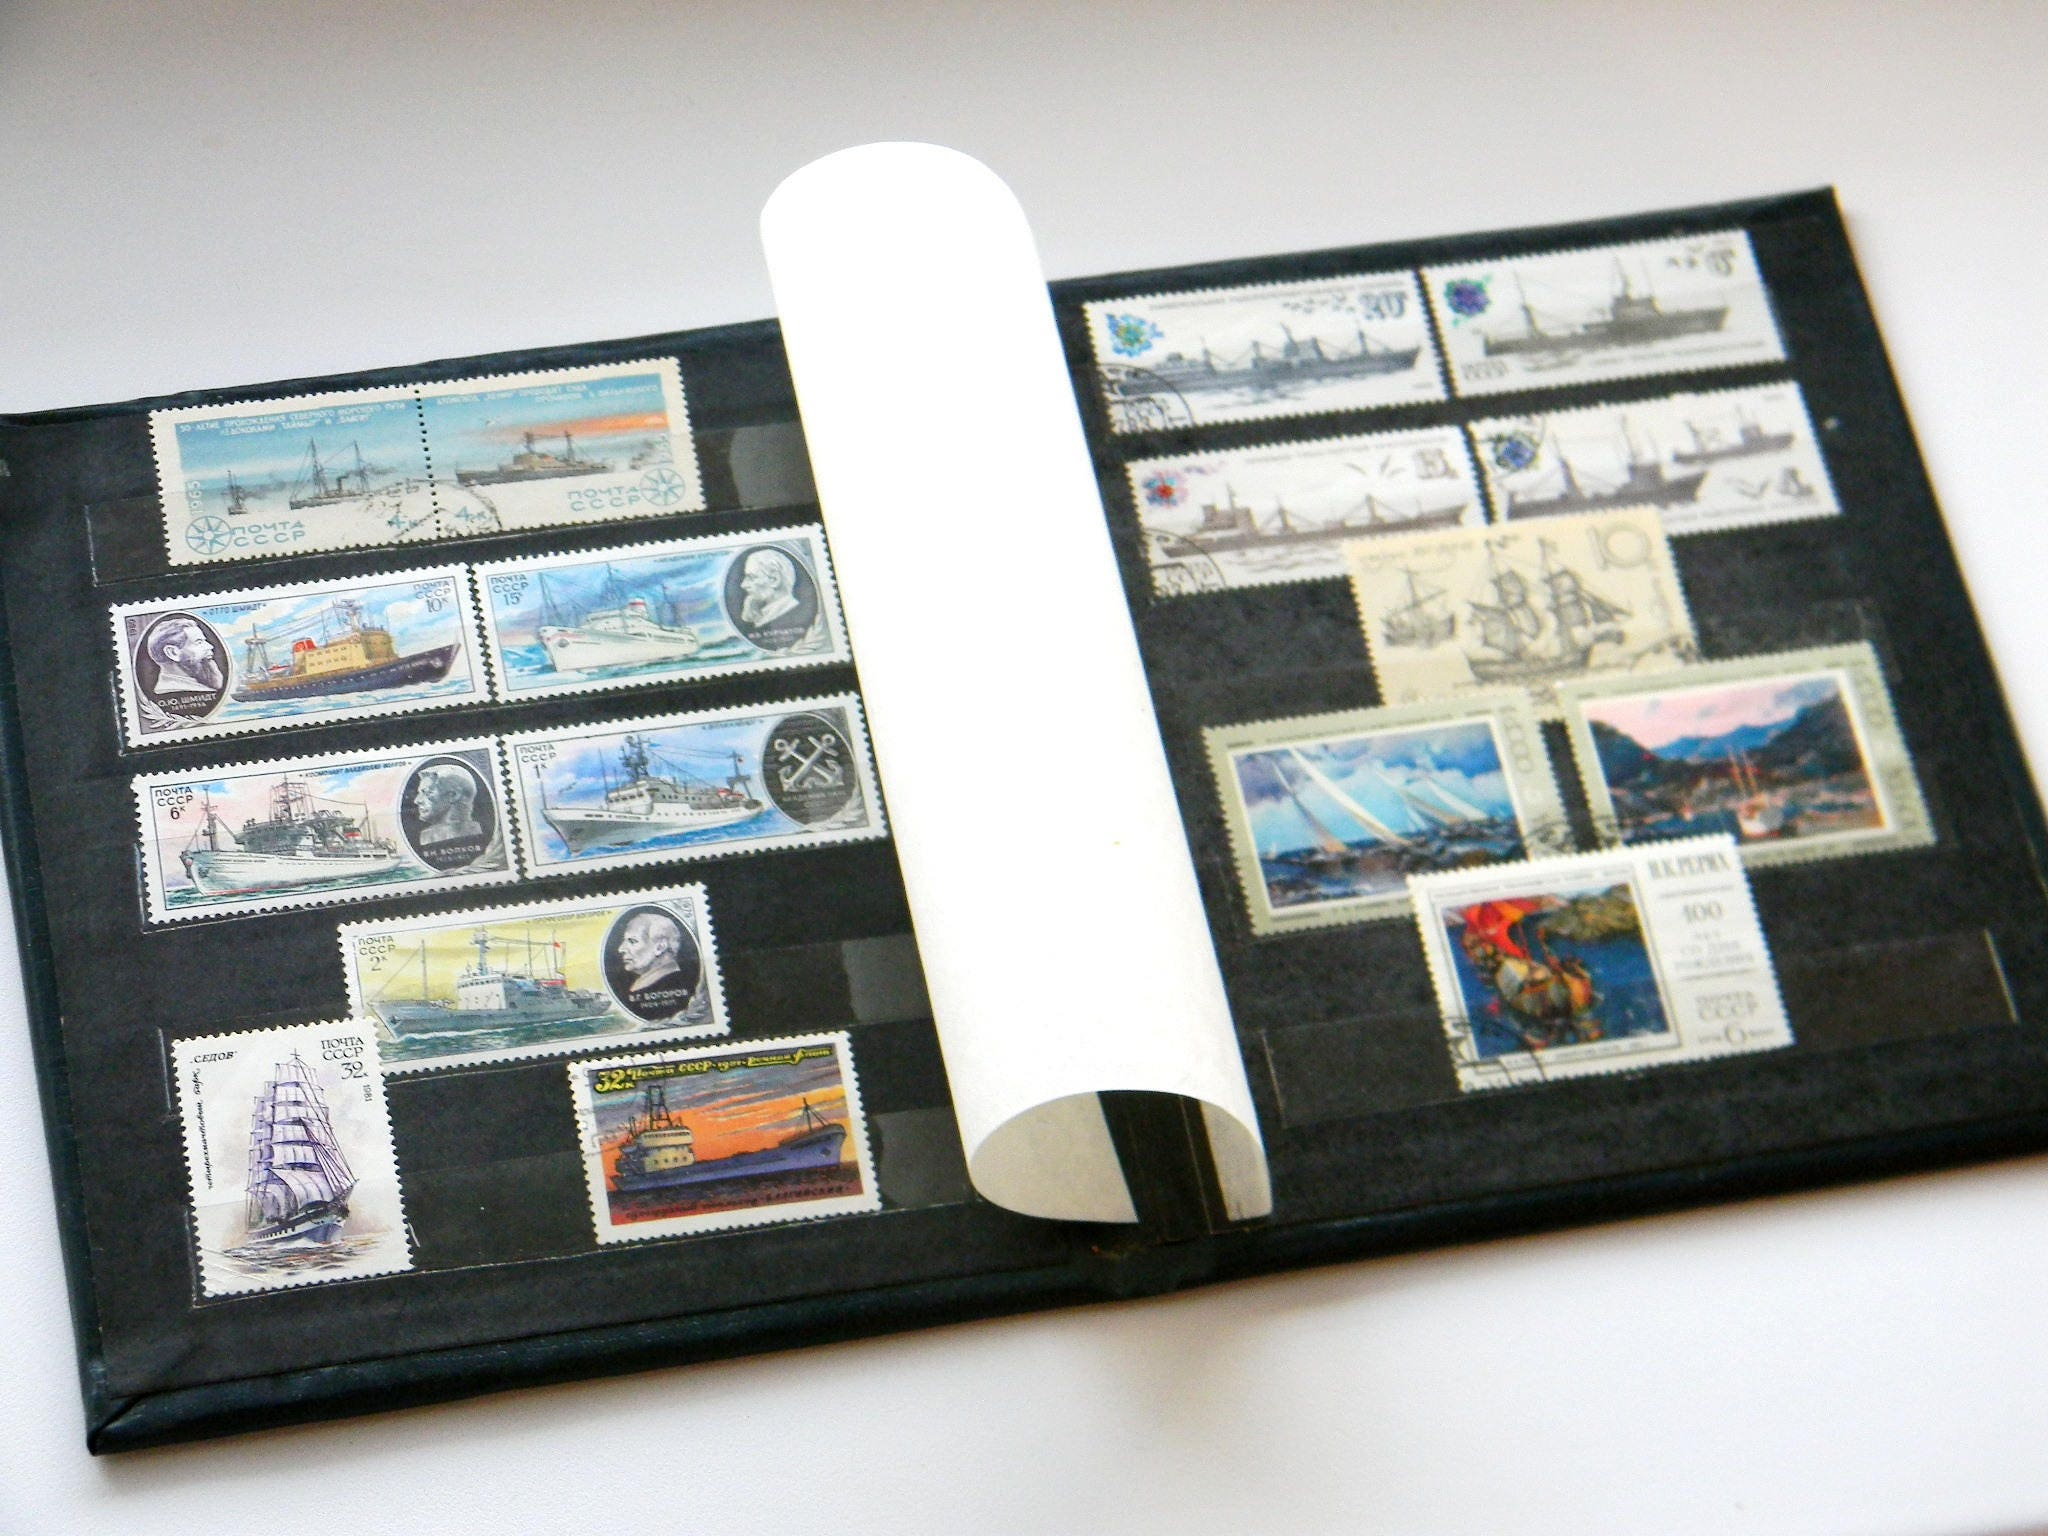 Vintage Album with Postal Stamps of the USSR-Soviet Postage Stamp  Collecting Album-Vintage Stamp Book-set of 17 Soviet ships theme stamps